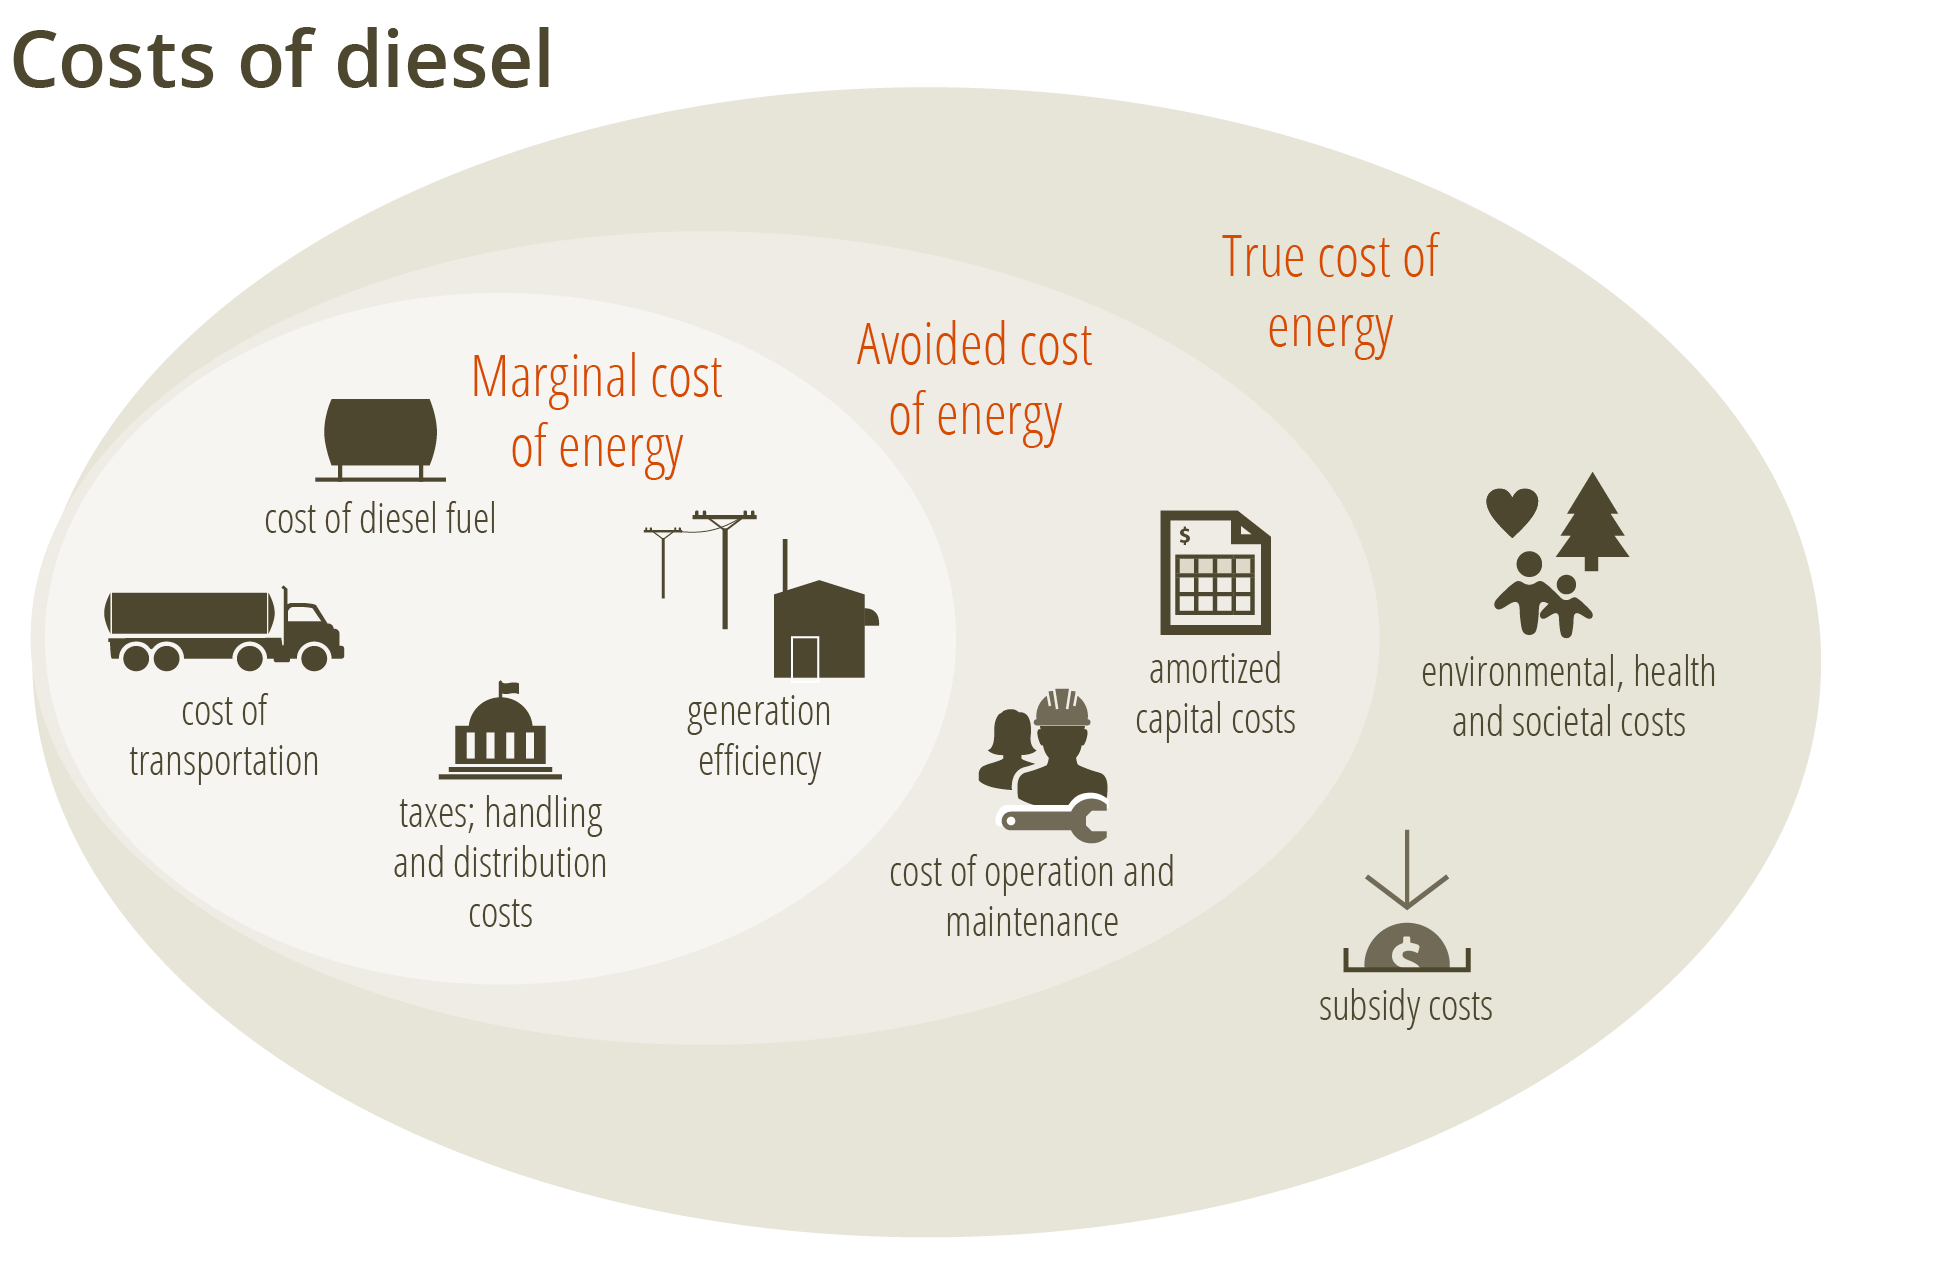 * Overview of the costs of diesel.